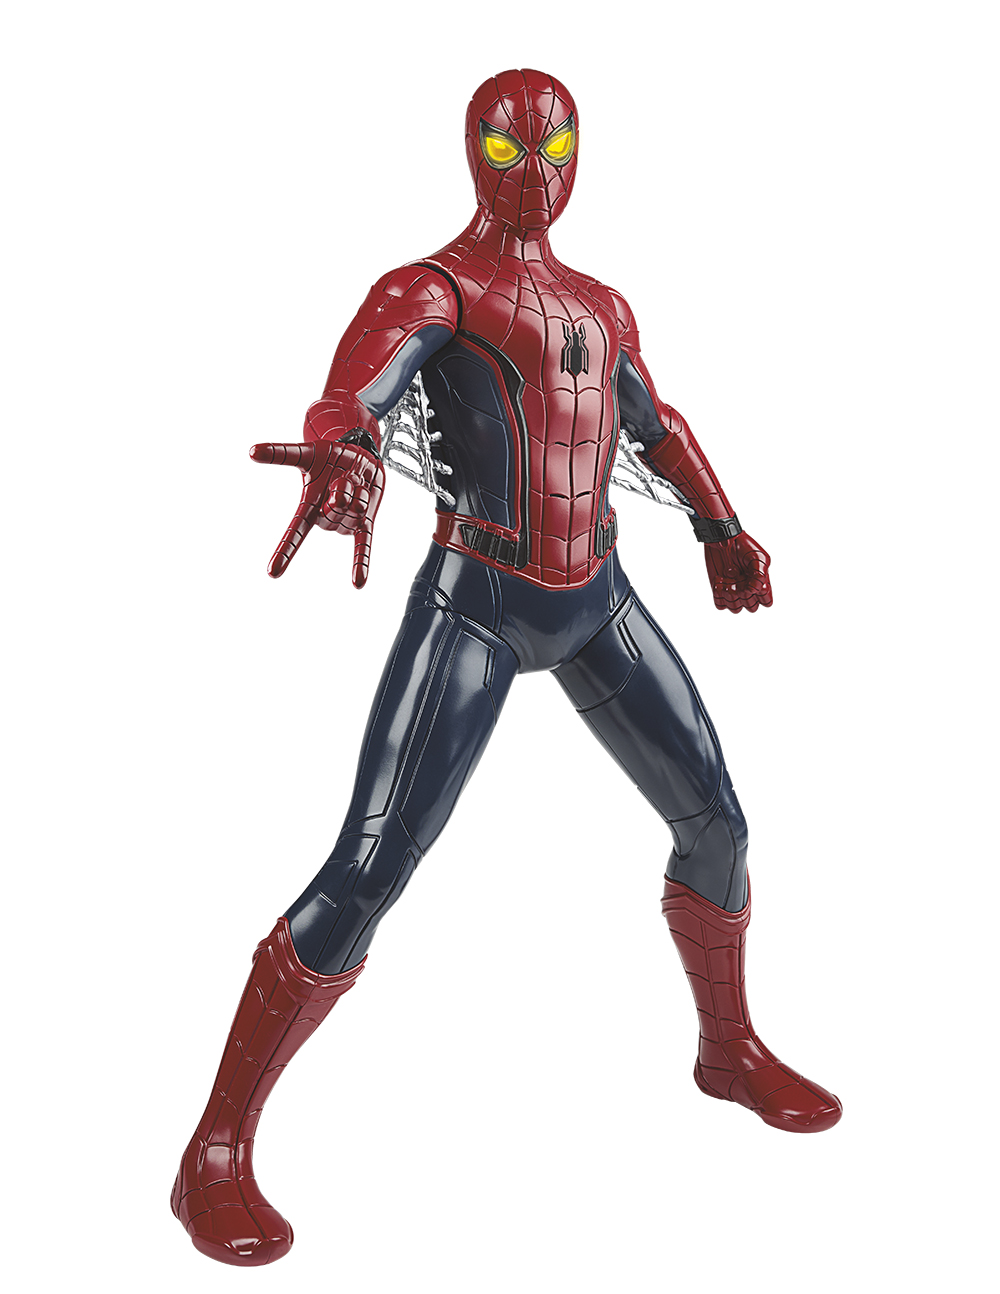 SPIDER-MAN HOMECOMING 15-INCH TECH SUIT SPIDER-MAN Figure (2)